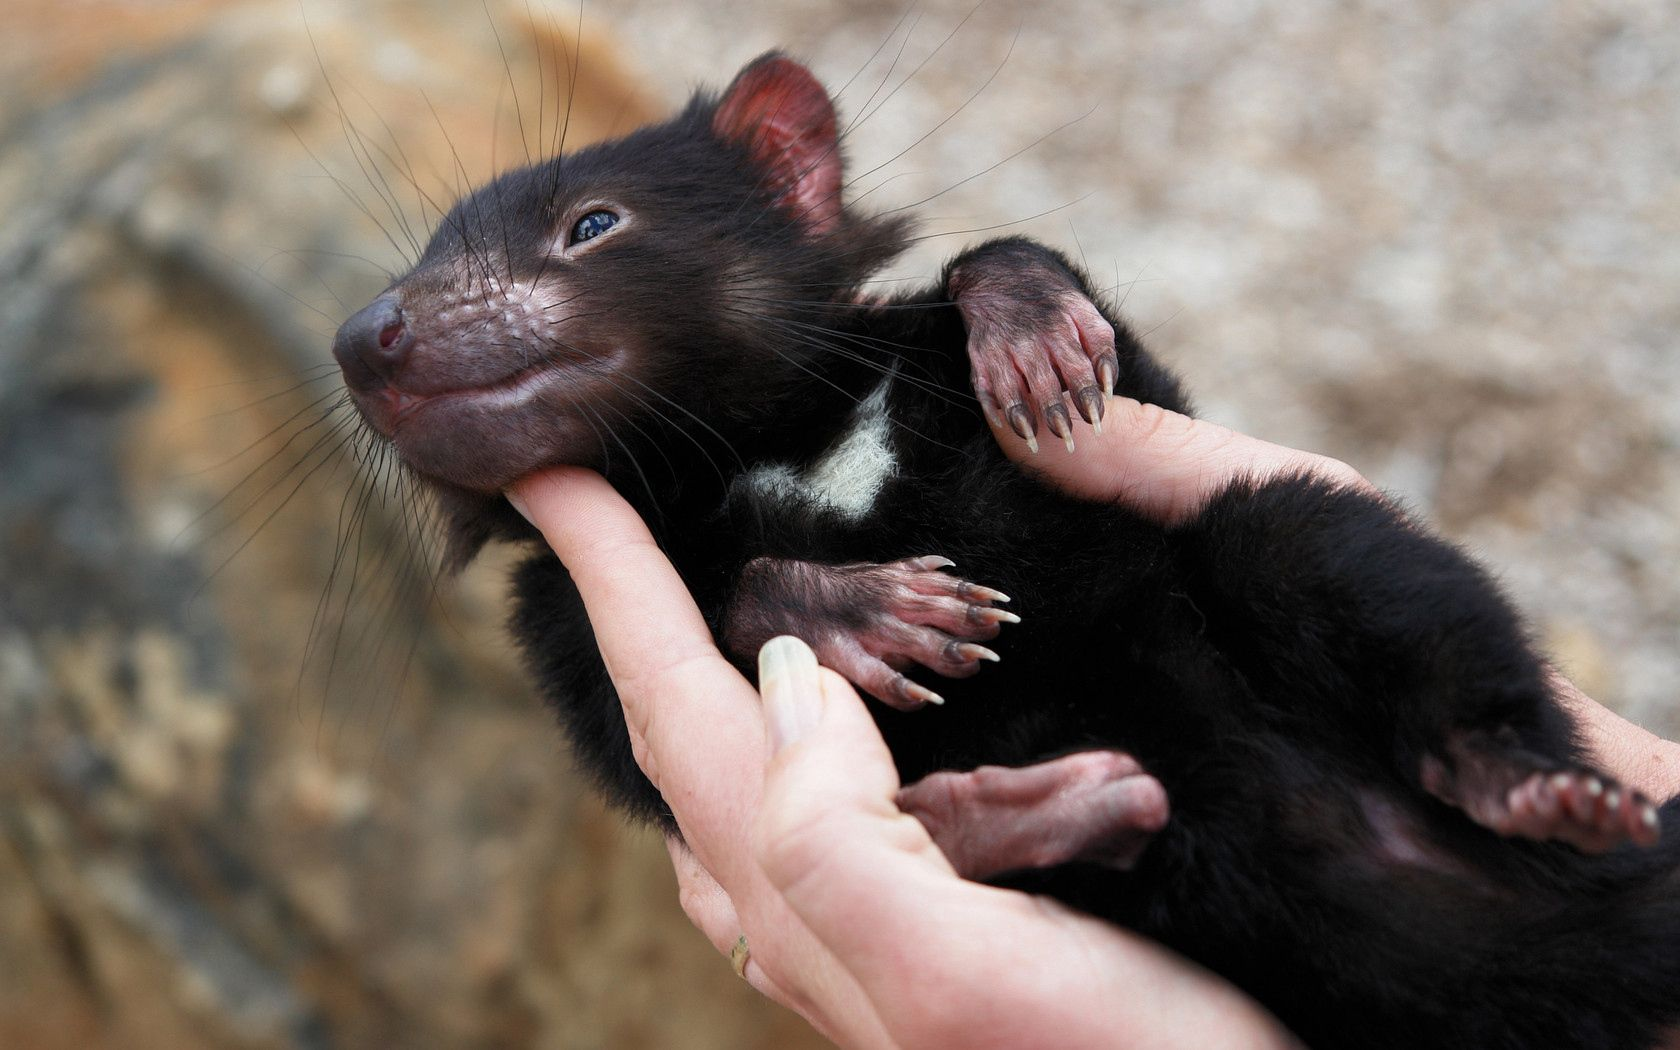 89289 download wallpaper Animals, Tasmanian Devil, Marsupial, Animal, To Lie Down, Lie, Hands screensavers and pictures for free